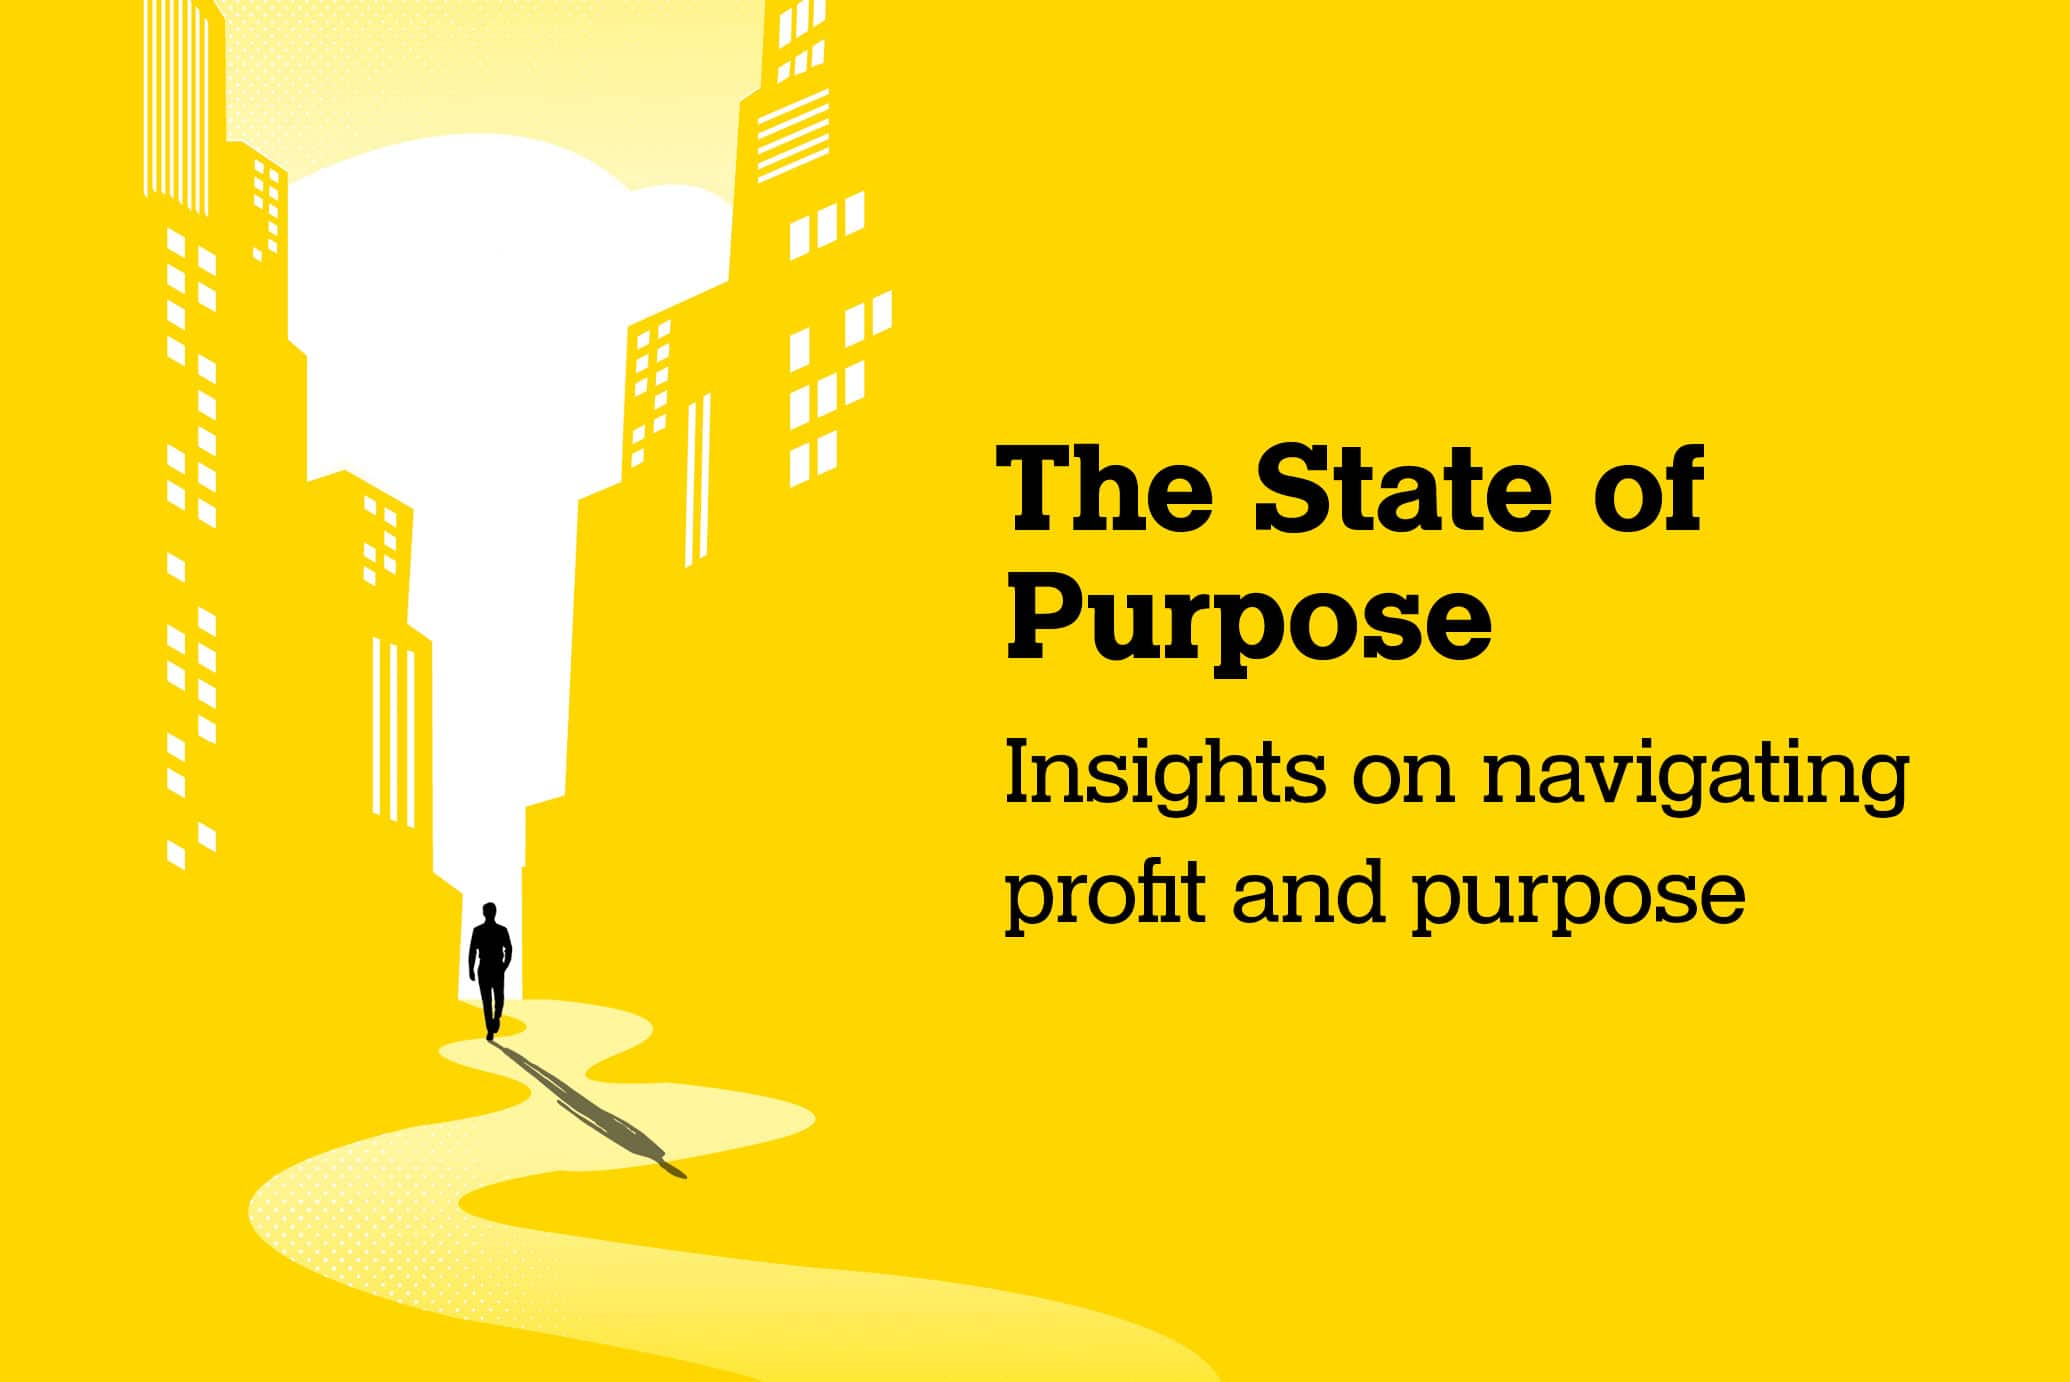 Yellow image with writing The State of Purpose Insights on navigating profit and purpose